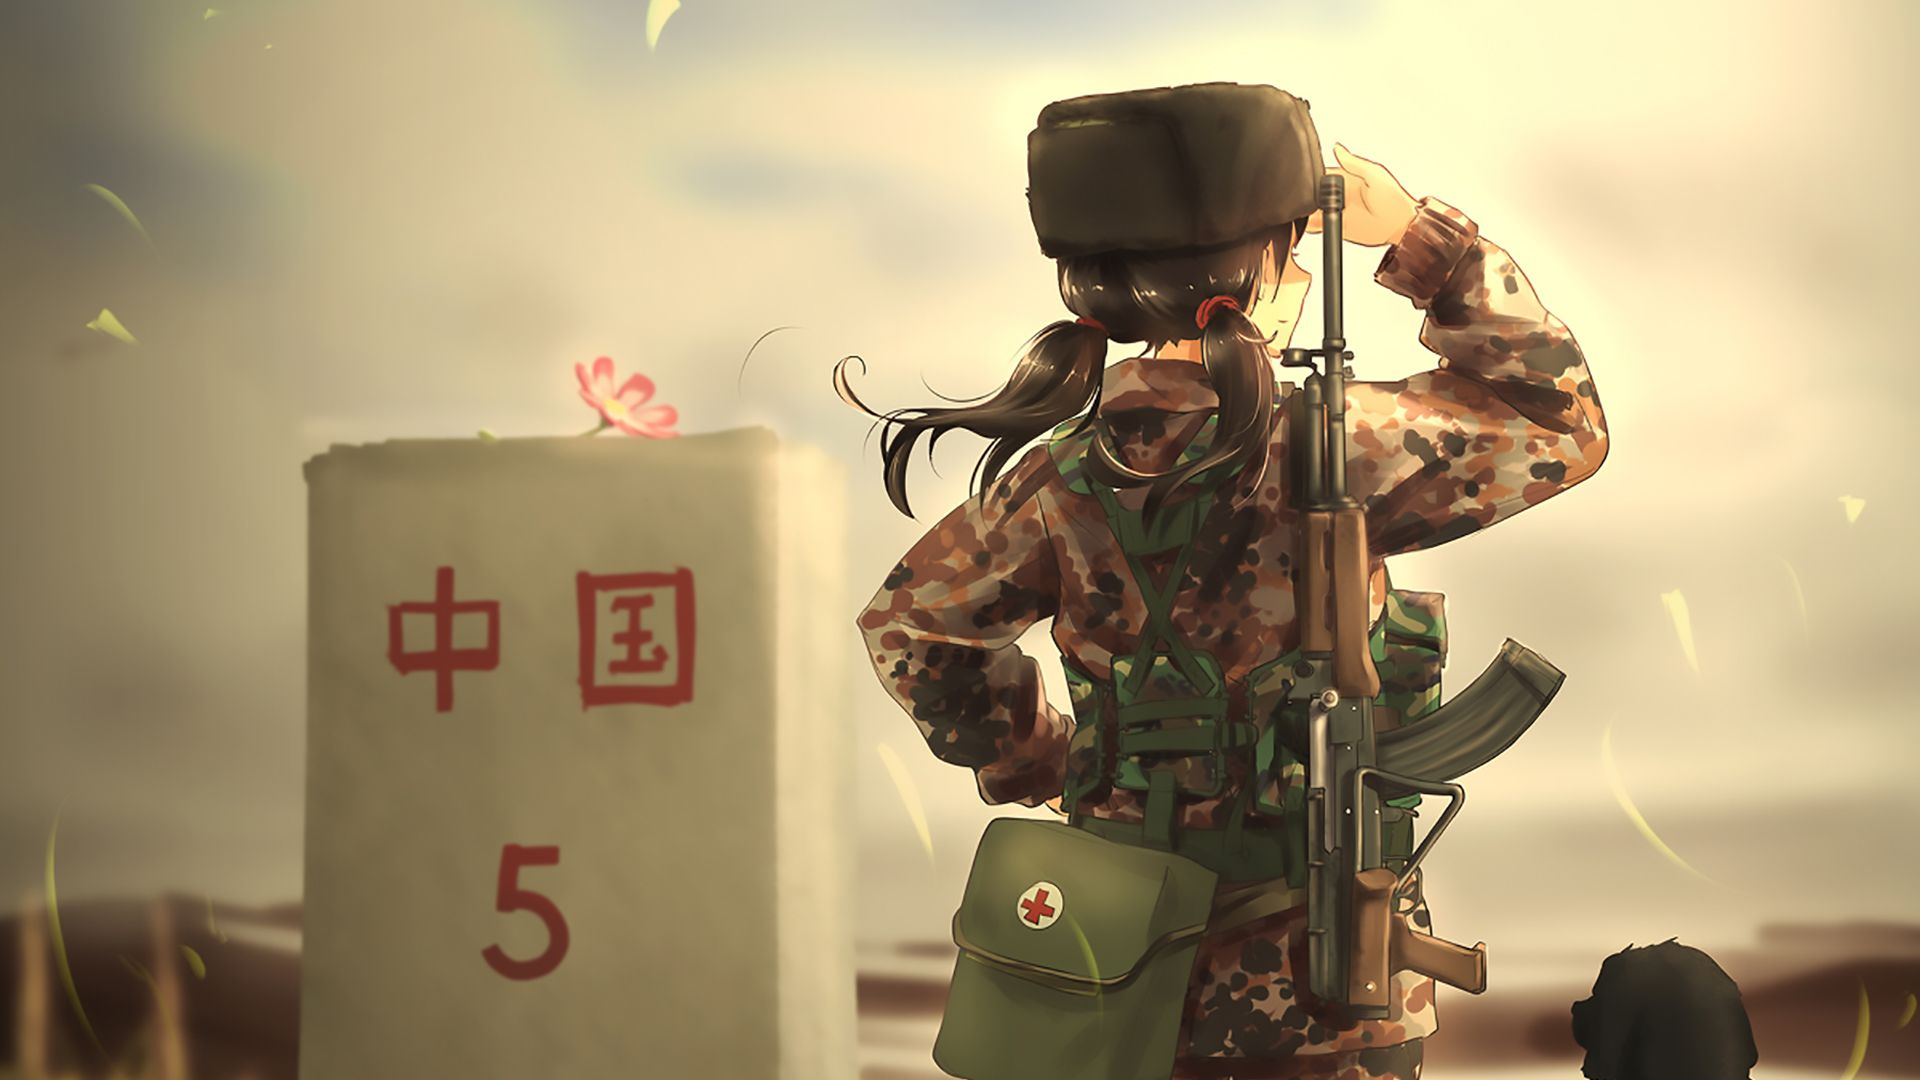 Soldier Army Anime Girl Dog Wallpaper